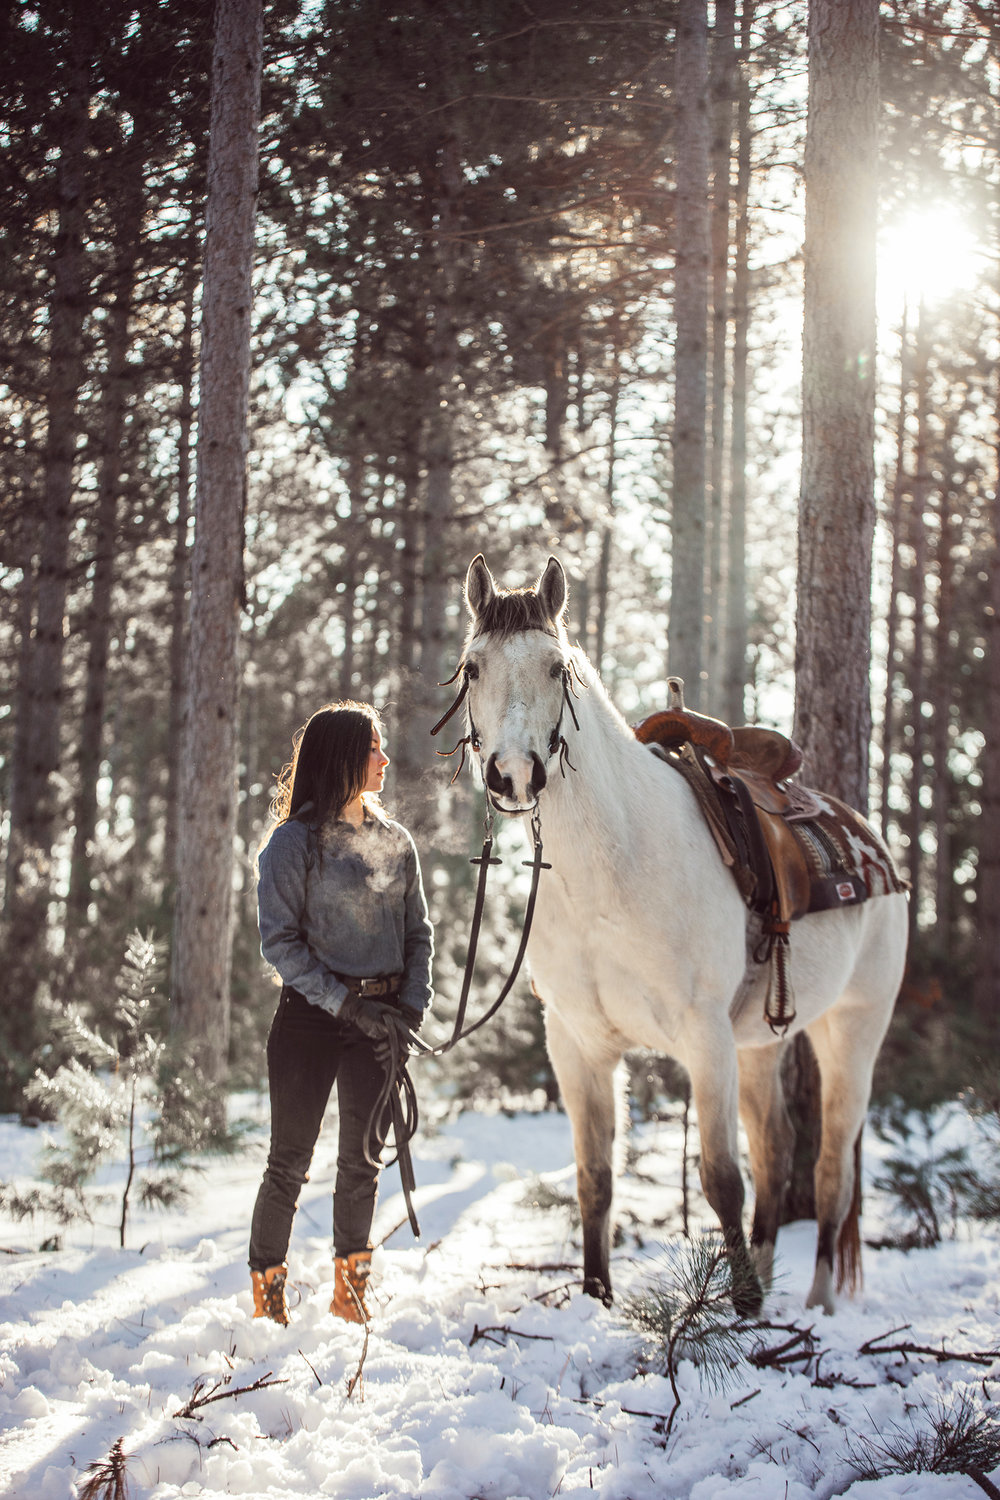 minnesota-equine-horse-photographer-5-reasons-why-you-need-a-winter-photoshoot-alyssa-smolen-photography.jpg